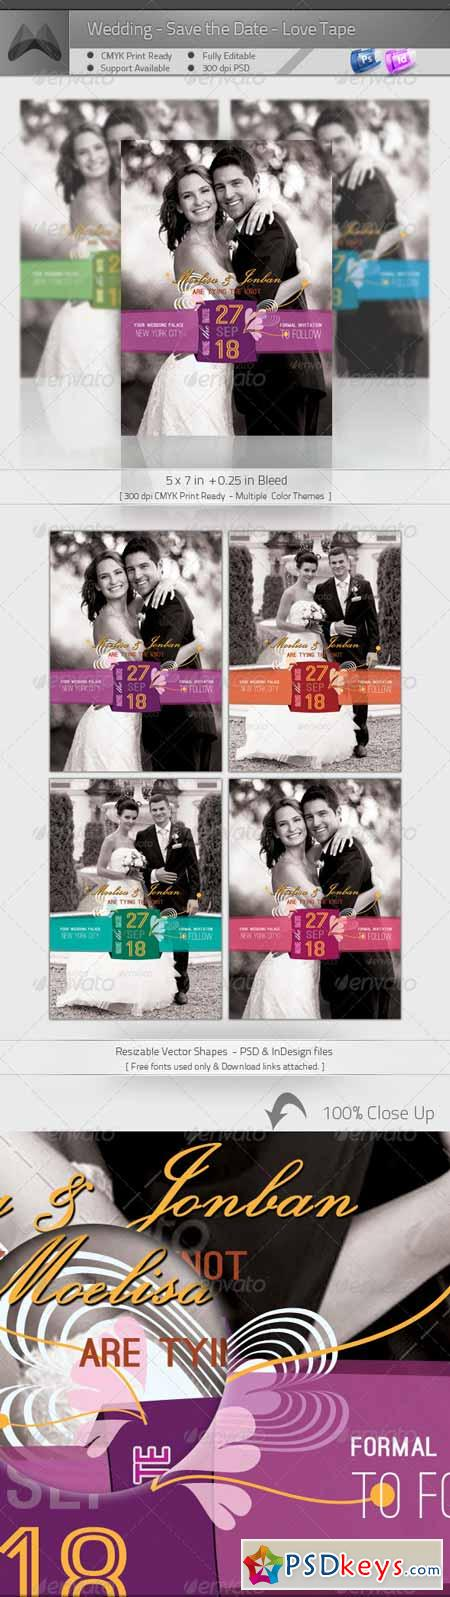 Wedding - Save the Date - Love Tape 4632475